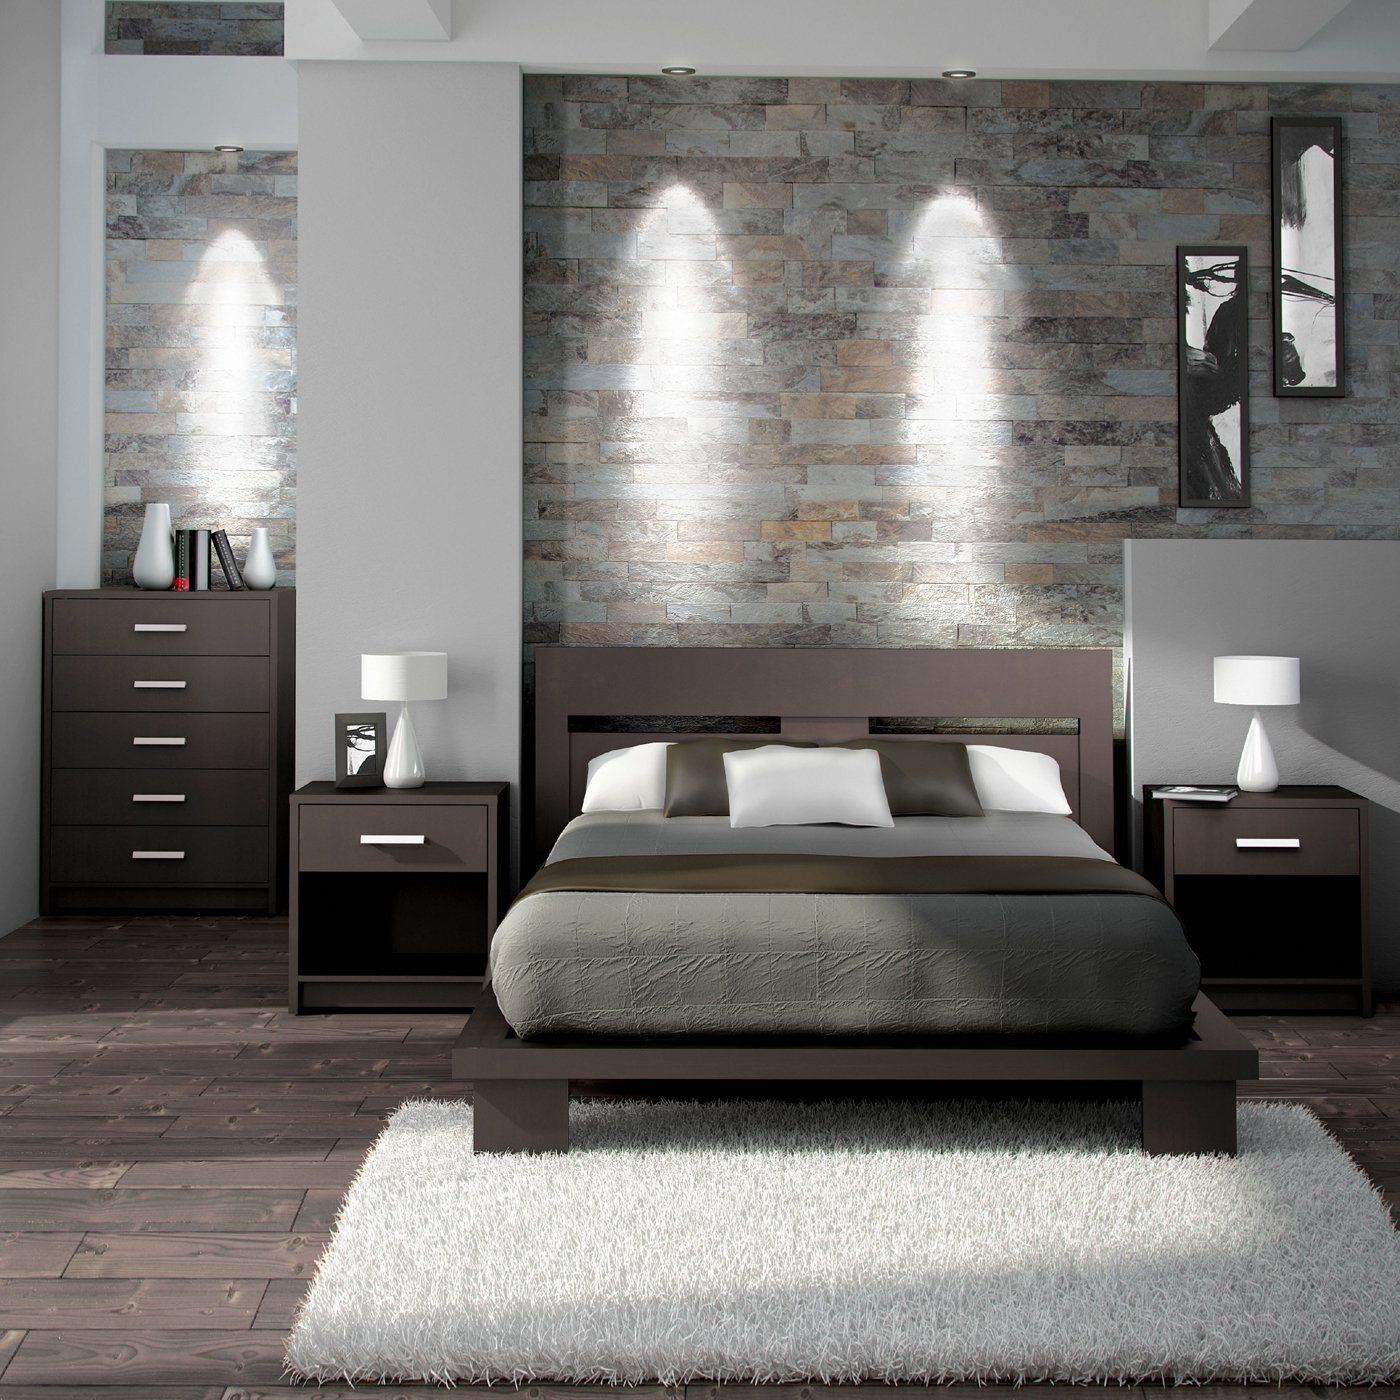 Beautiful A Simple And Modern Bedroom Set In Espresso Brown. Itu0027s Made With A 100%  Recycled Cardboard.